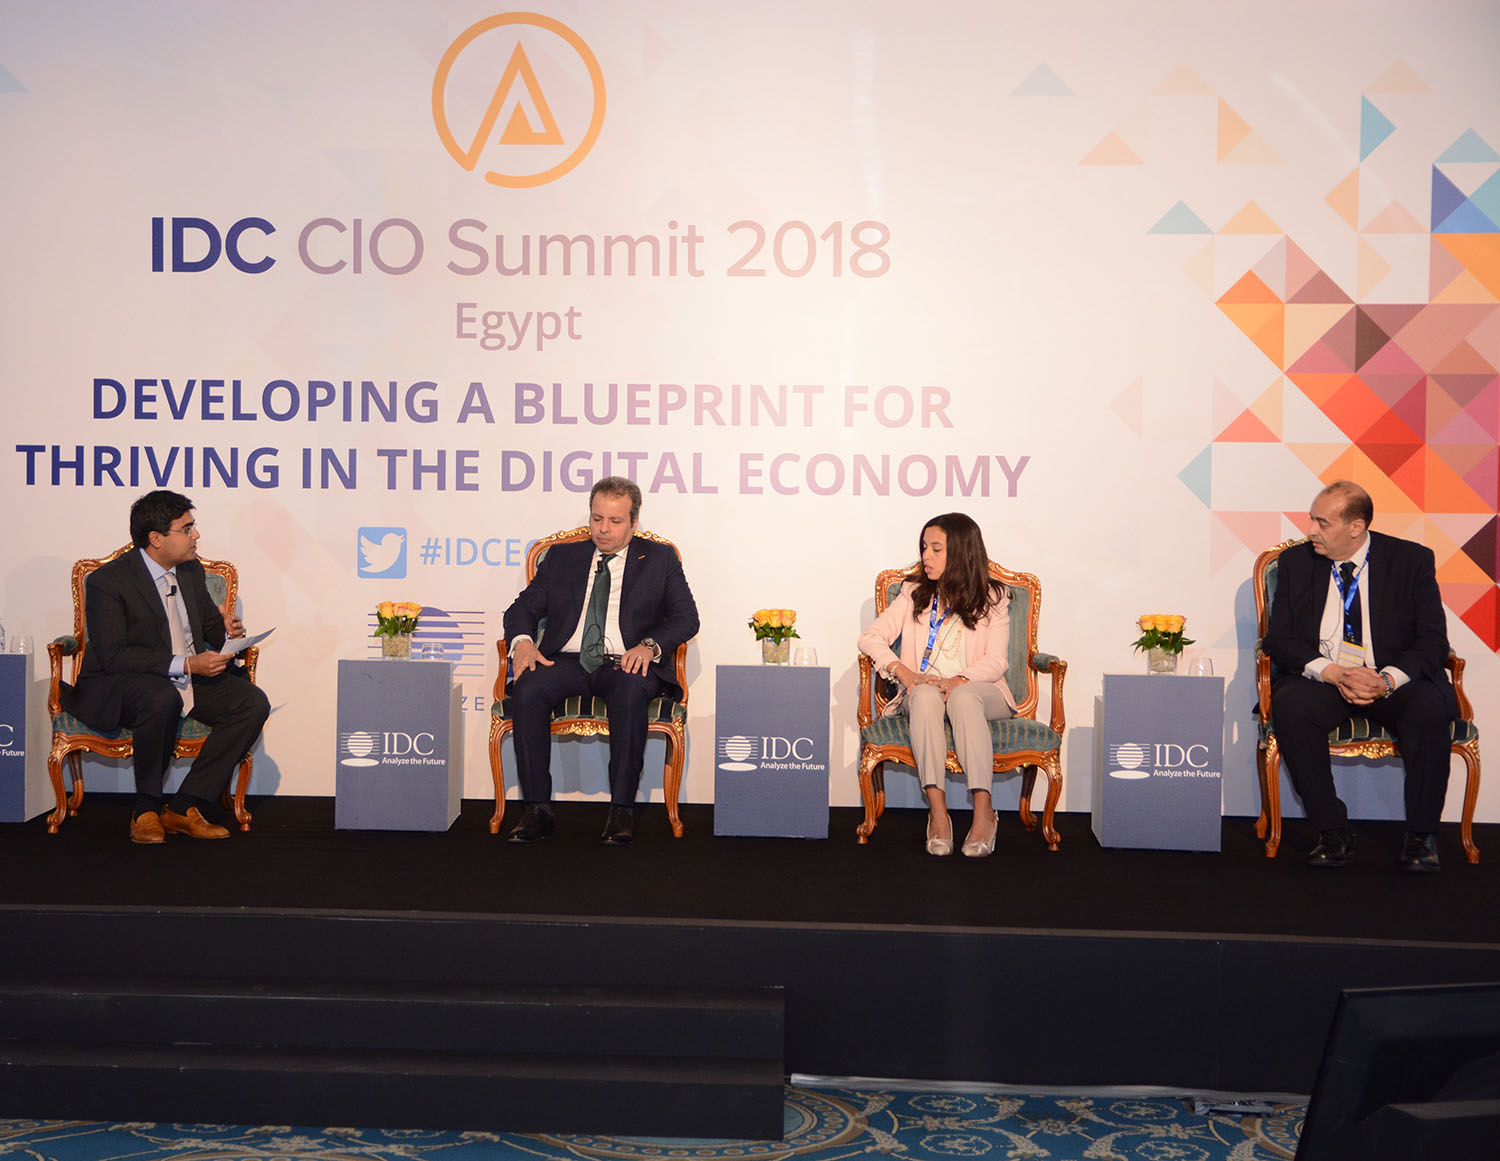 Idc banking and finance congress 2018 egyptinnovate 12 malvernweather Images